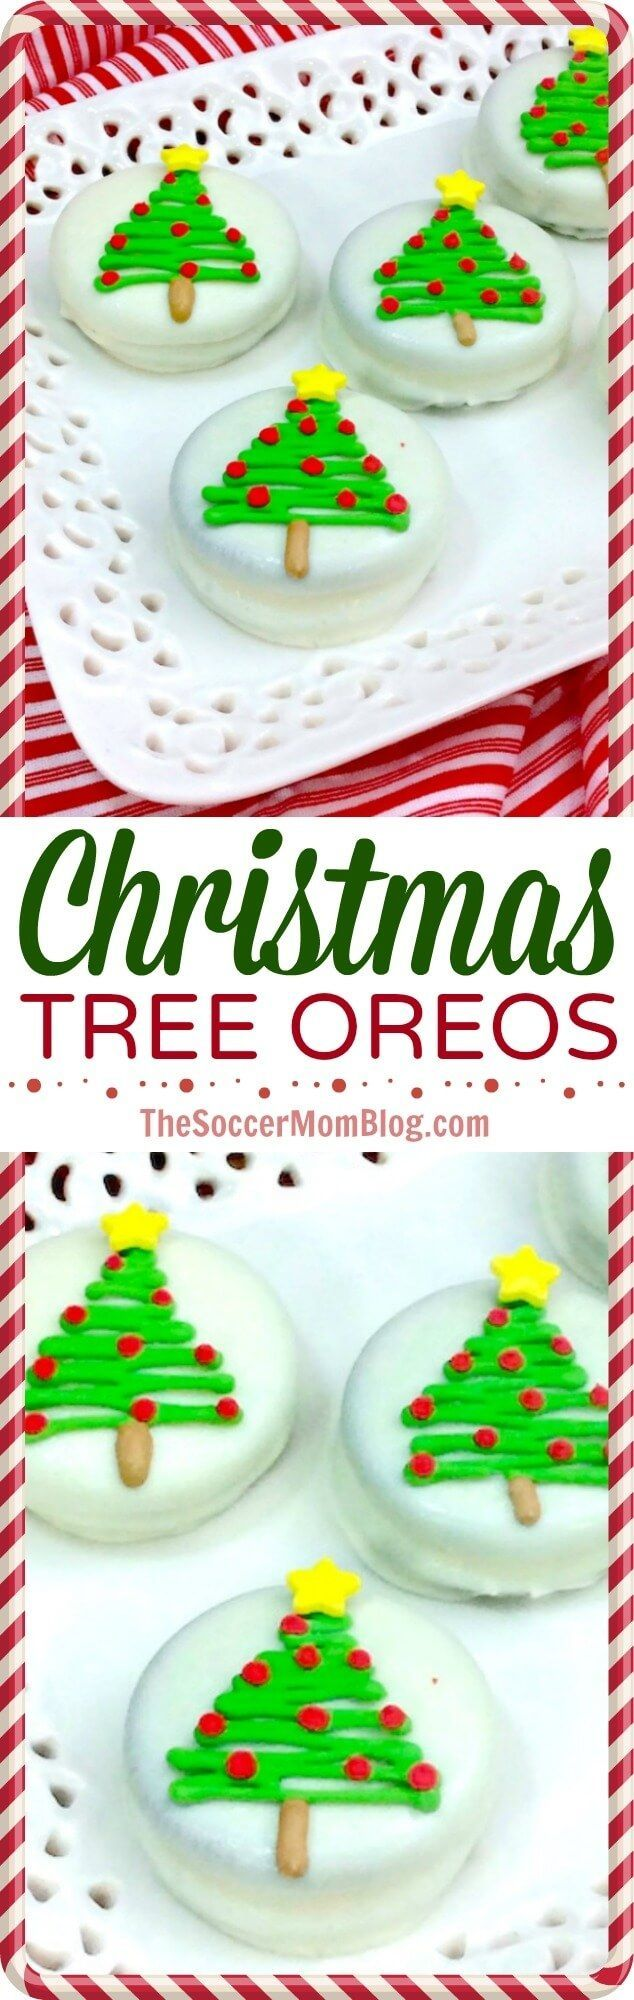 It doesn't get much cuter than this!! Easy chocolate covered Christmas Oreos make a party-perfect treat or holiday gift that kids can make! via @https://www.pinterest.com/soccermomblog